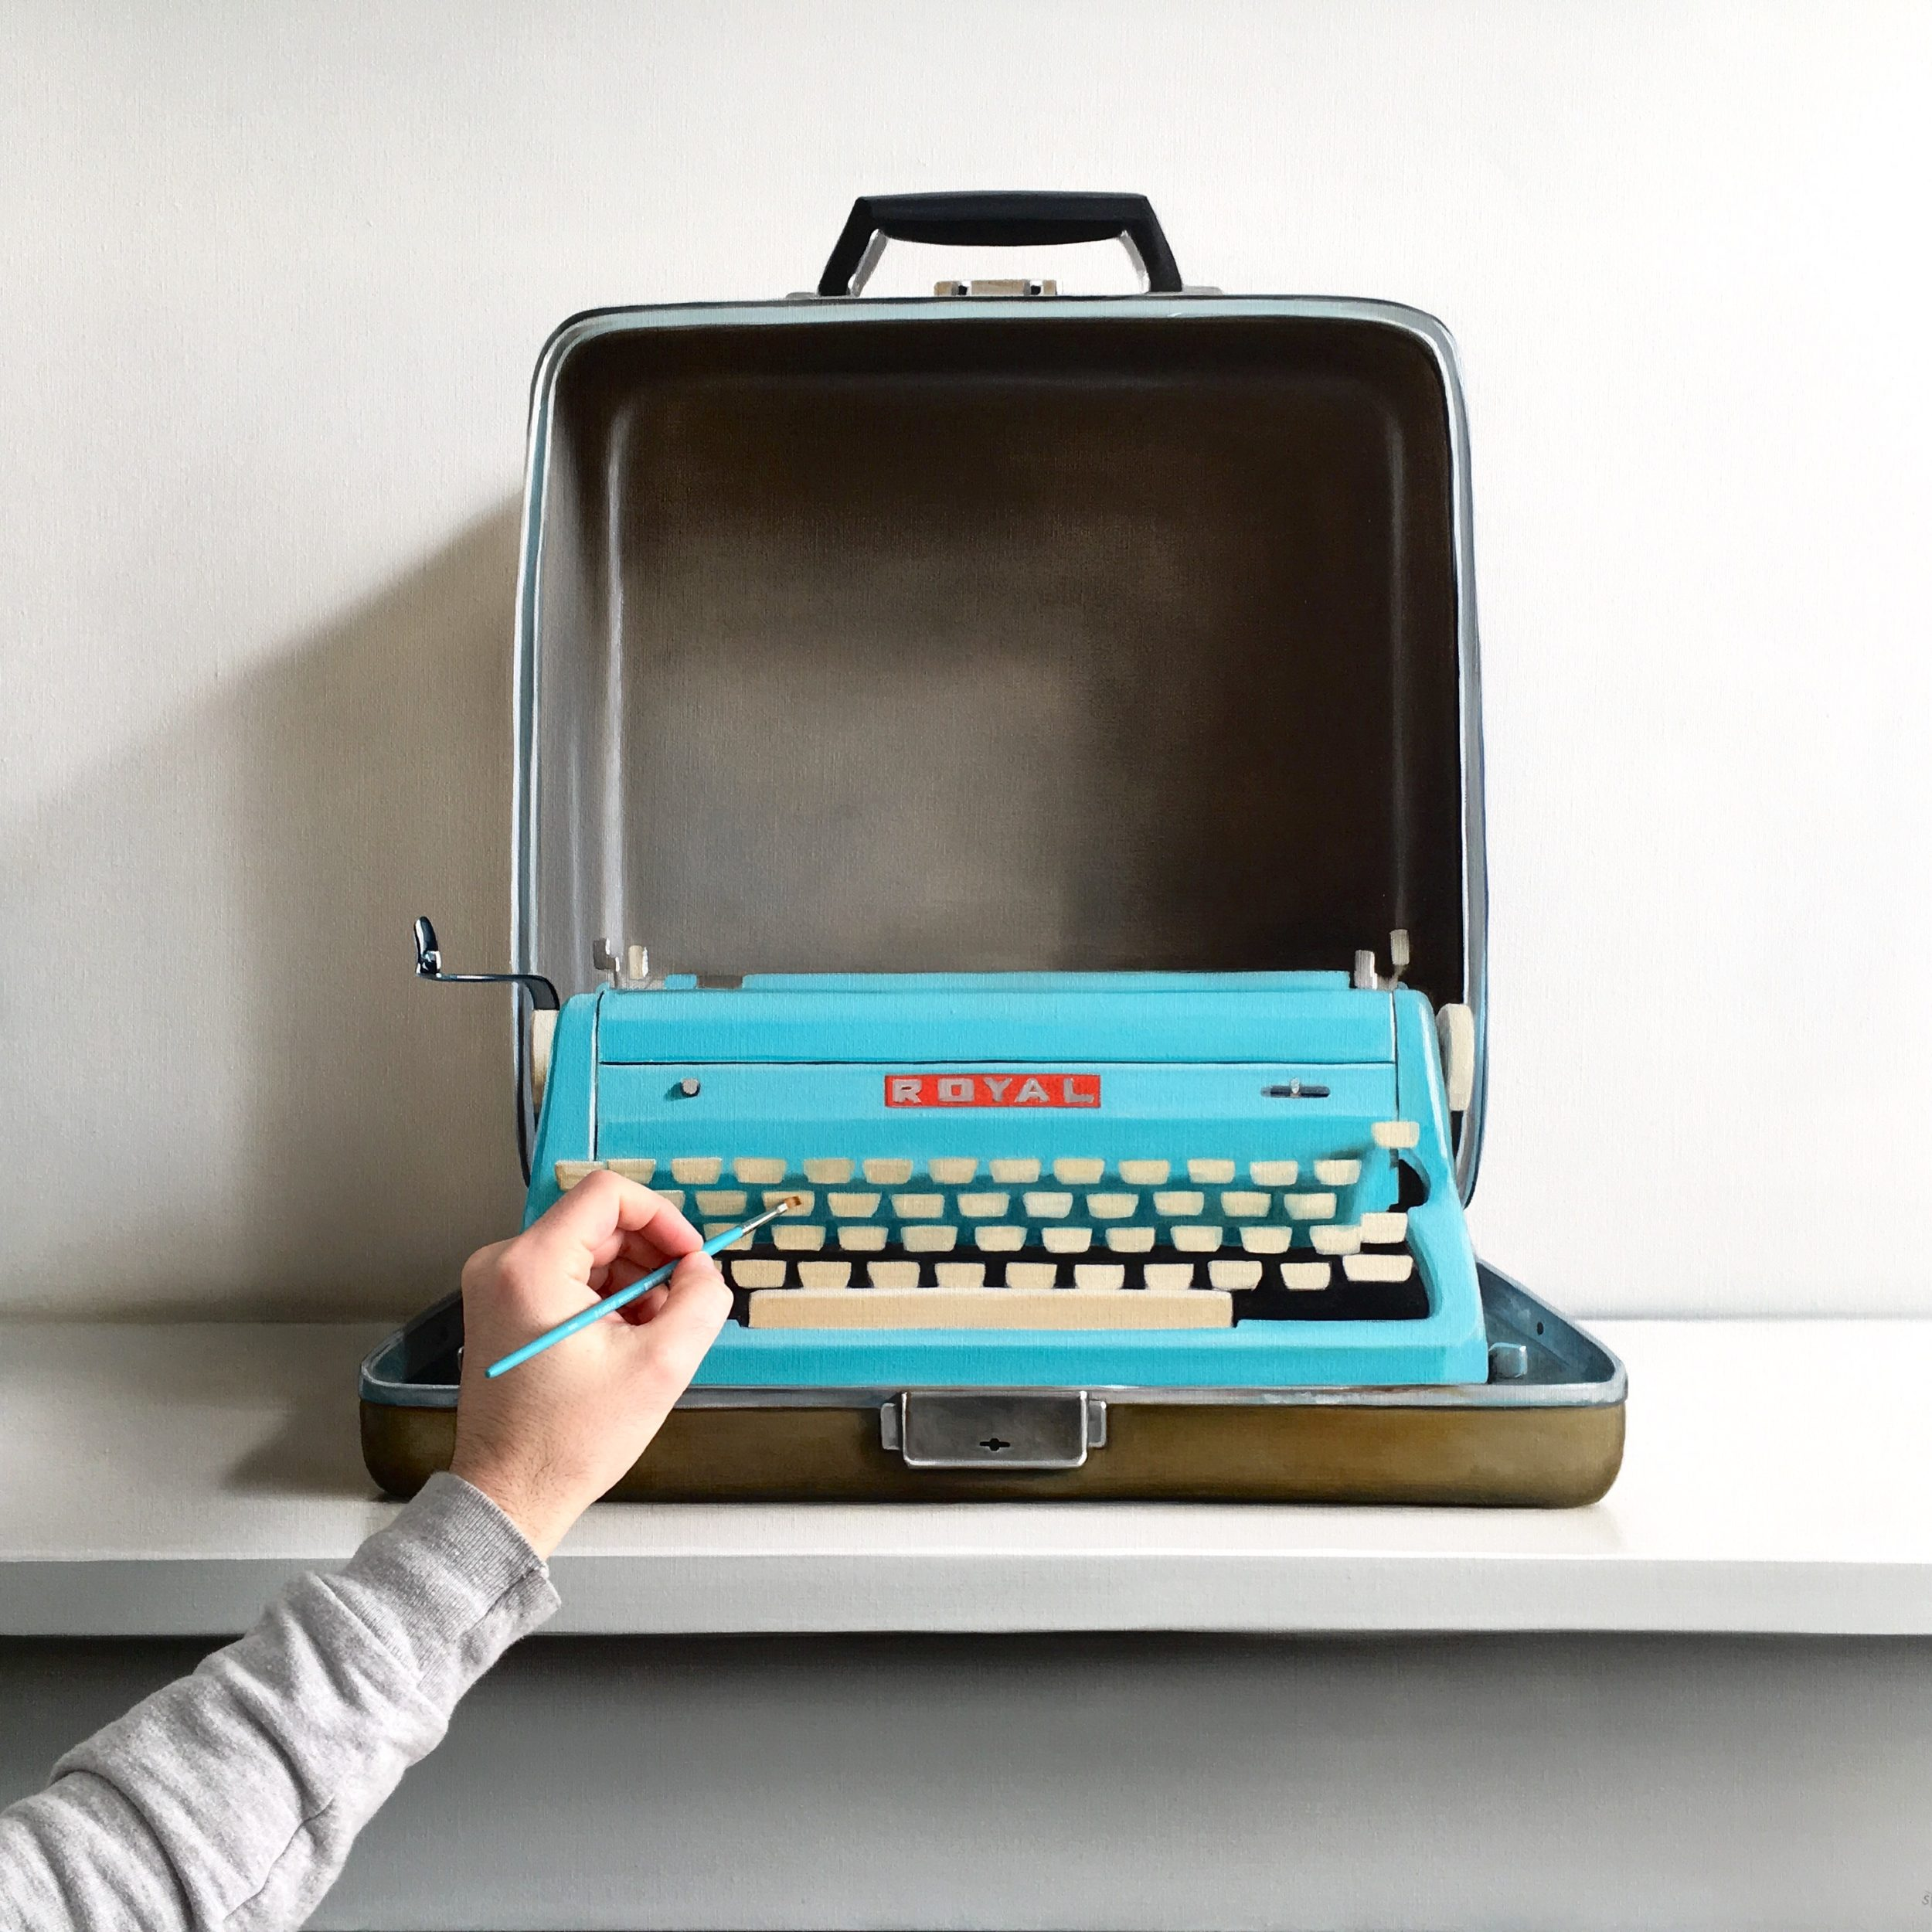 Royal Typewriter / Work in Progress by Christopher Stott